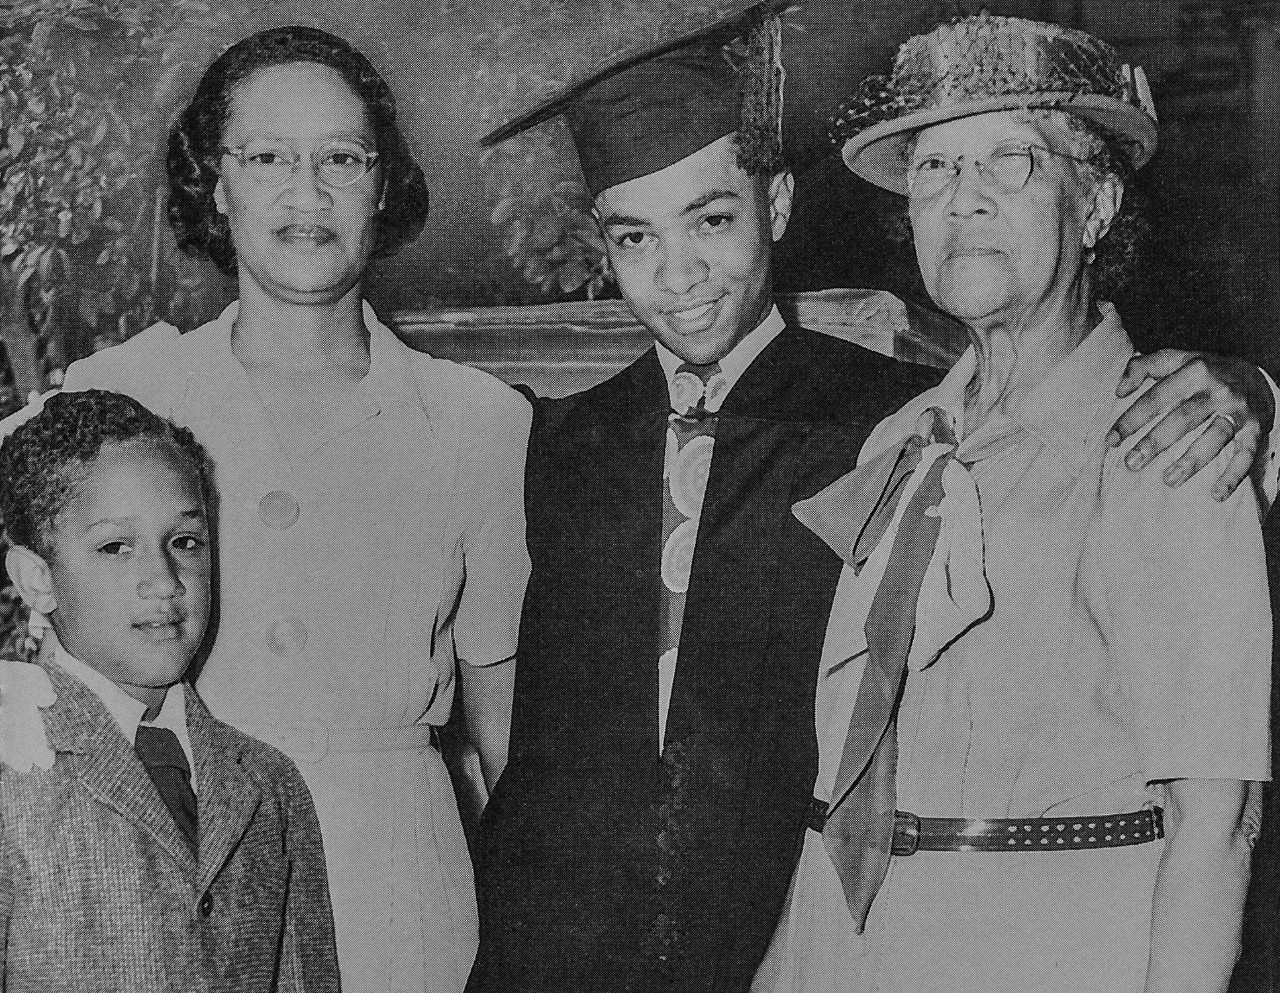 Photo of Darwin T. Turner with his family graduating from the University of Cincinnati with his bachelor's degree at age 16 in 1947.  Darwin T. Turner is featured in the middle with his cap and gown.